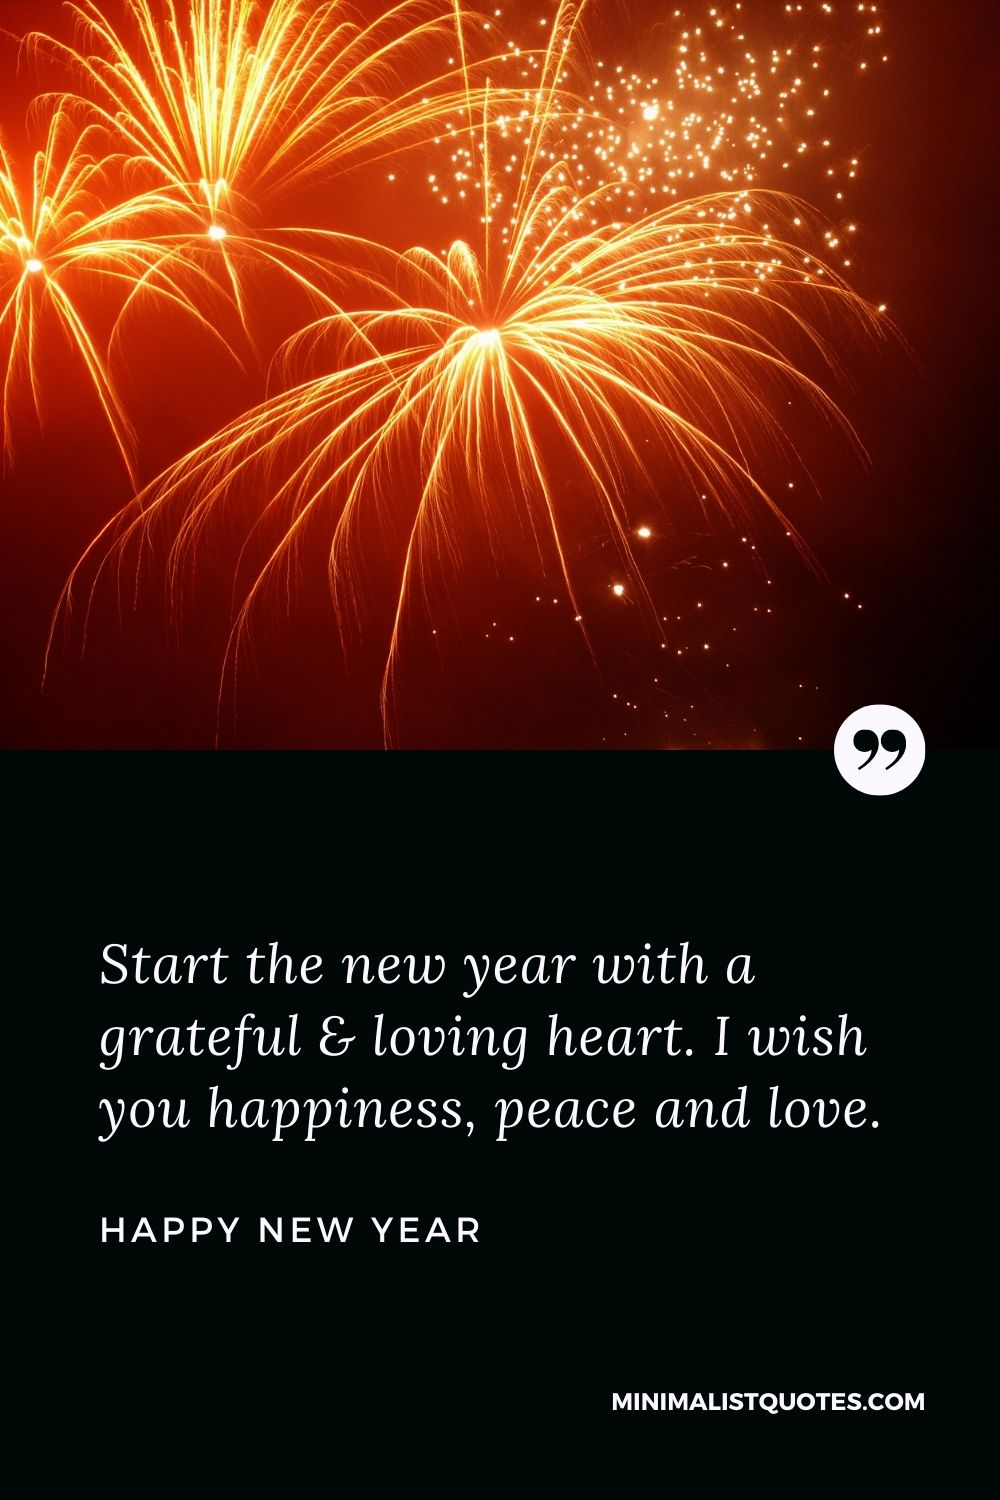 New Year Wish - Start the new year with a grateful & loving heart. I wish you happiness, peace and love.